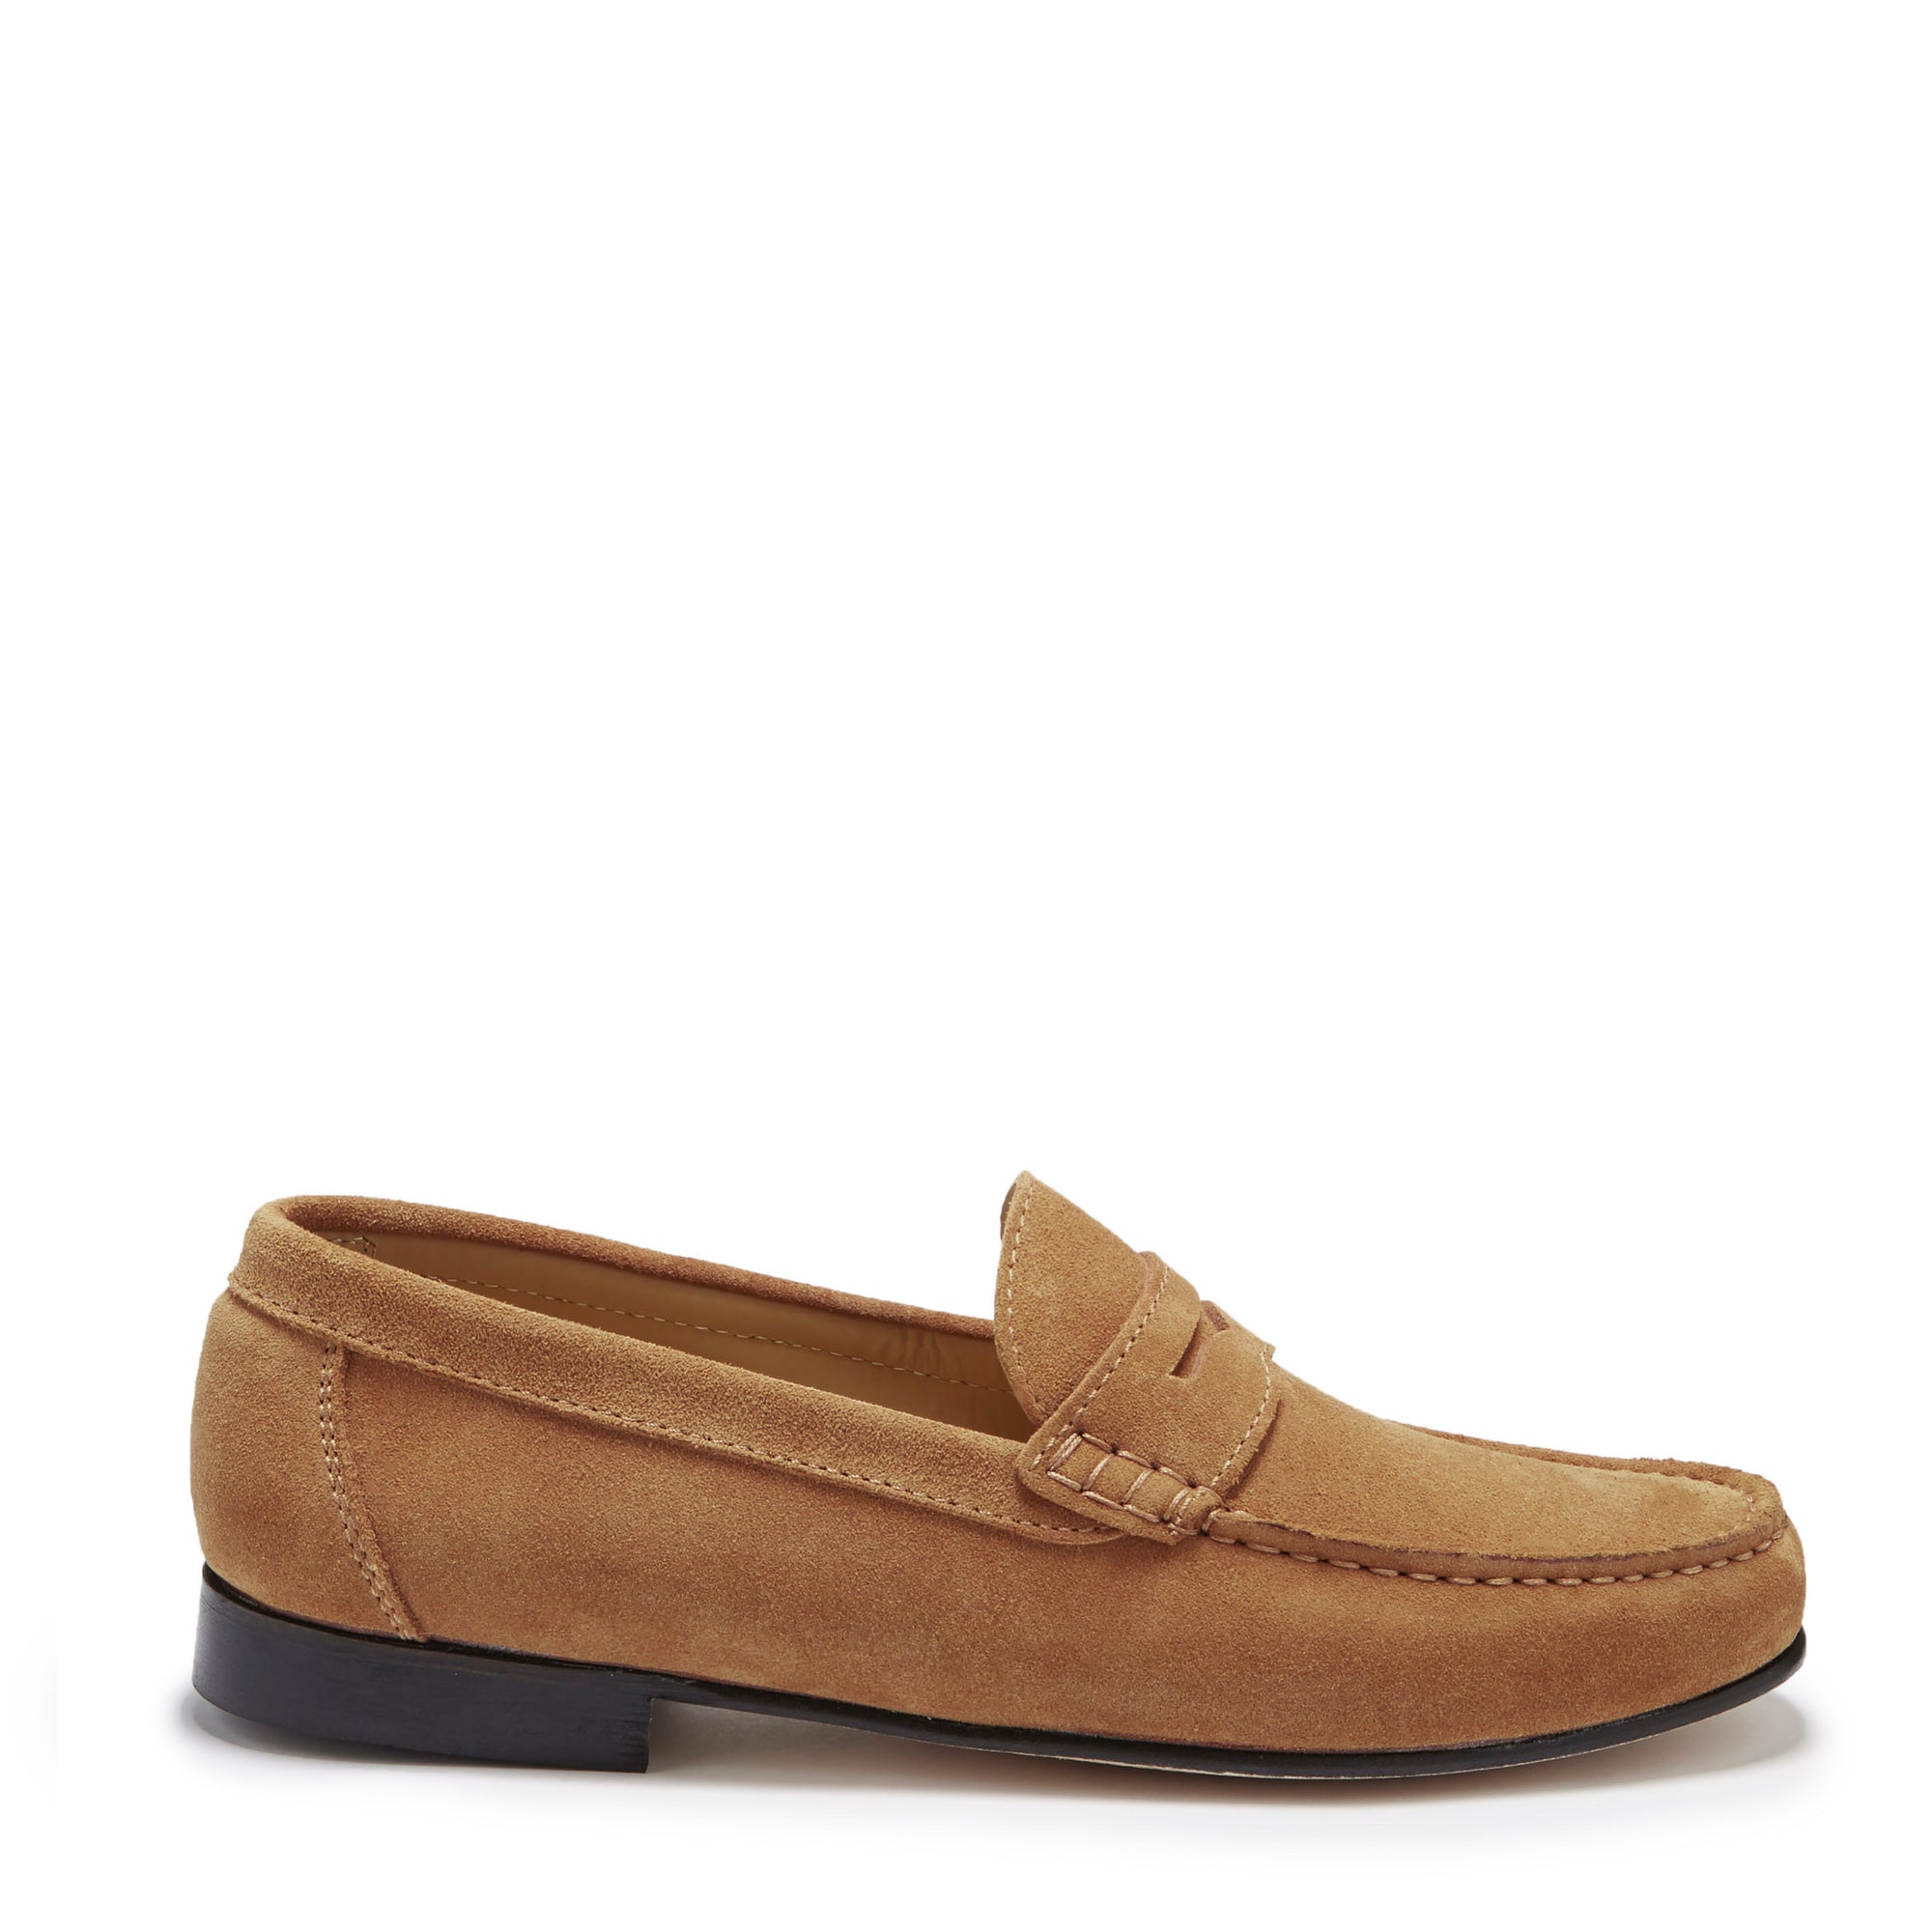 Tobacco Suede, Penny Loafers, Leather Sole Side